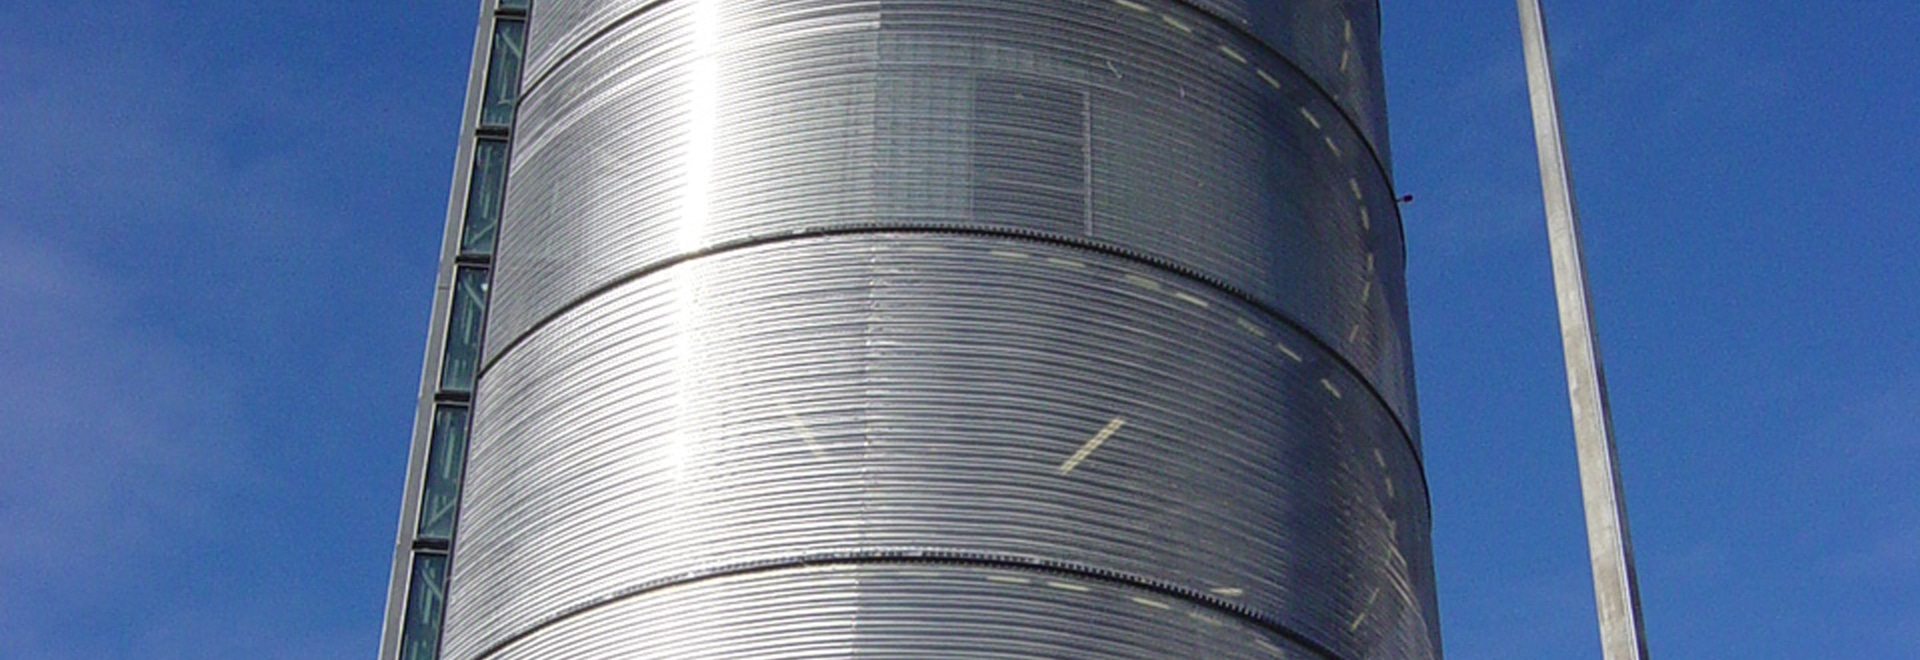 Cladding made of stainless steel mesh